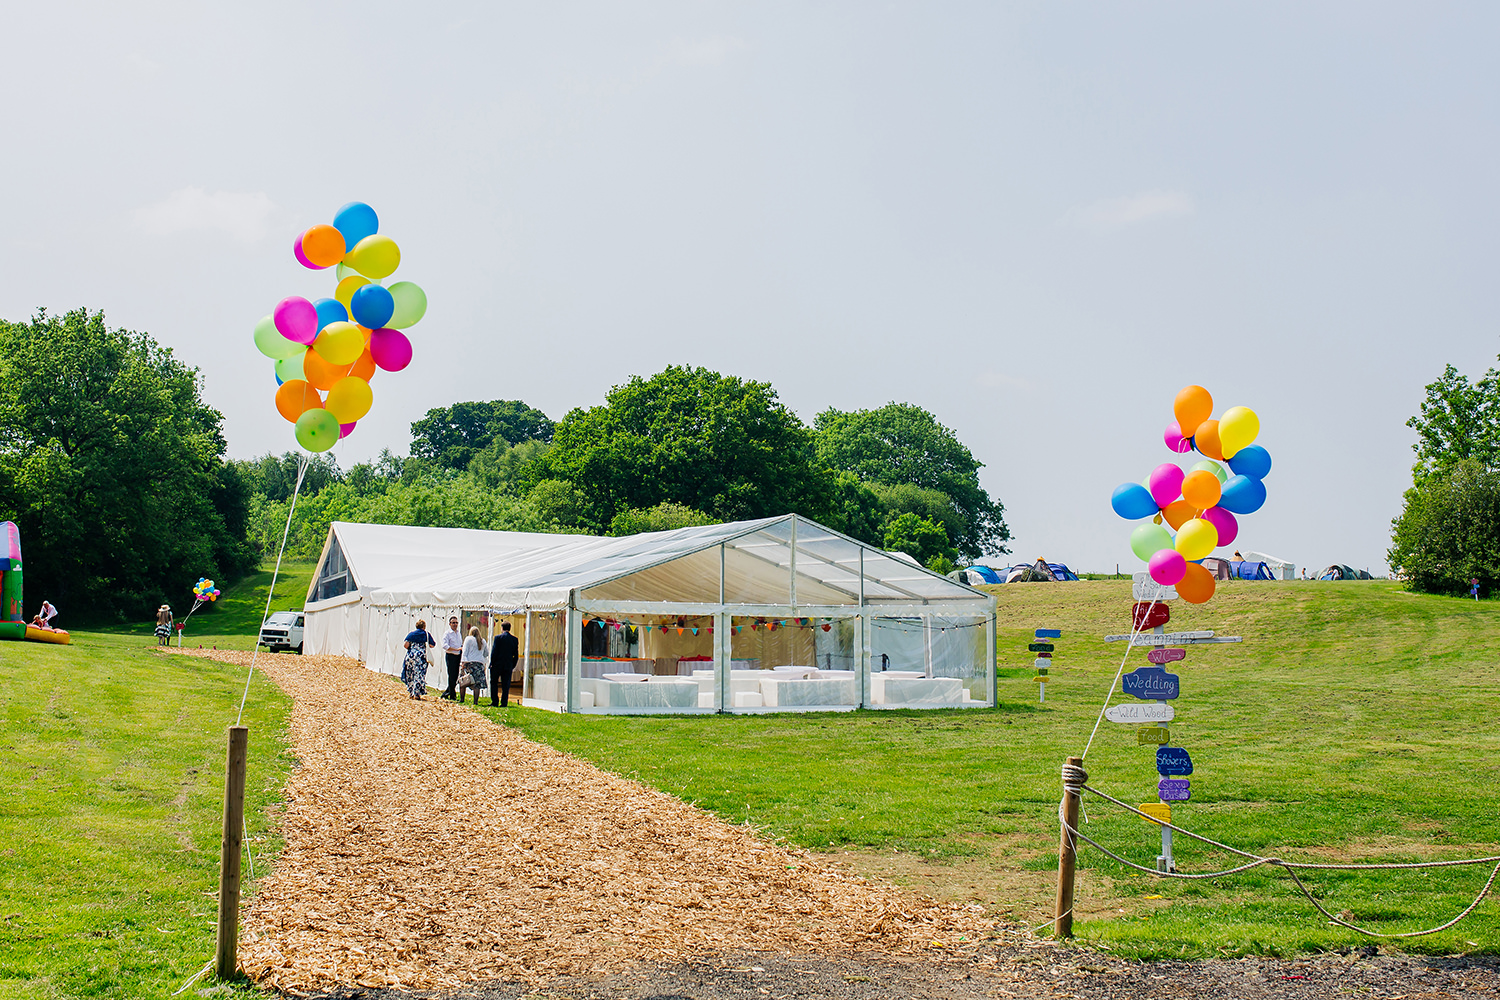 How To Find A Unique Wedding Venue In Dorset?